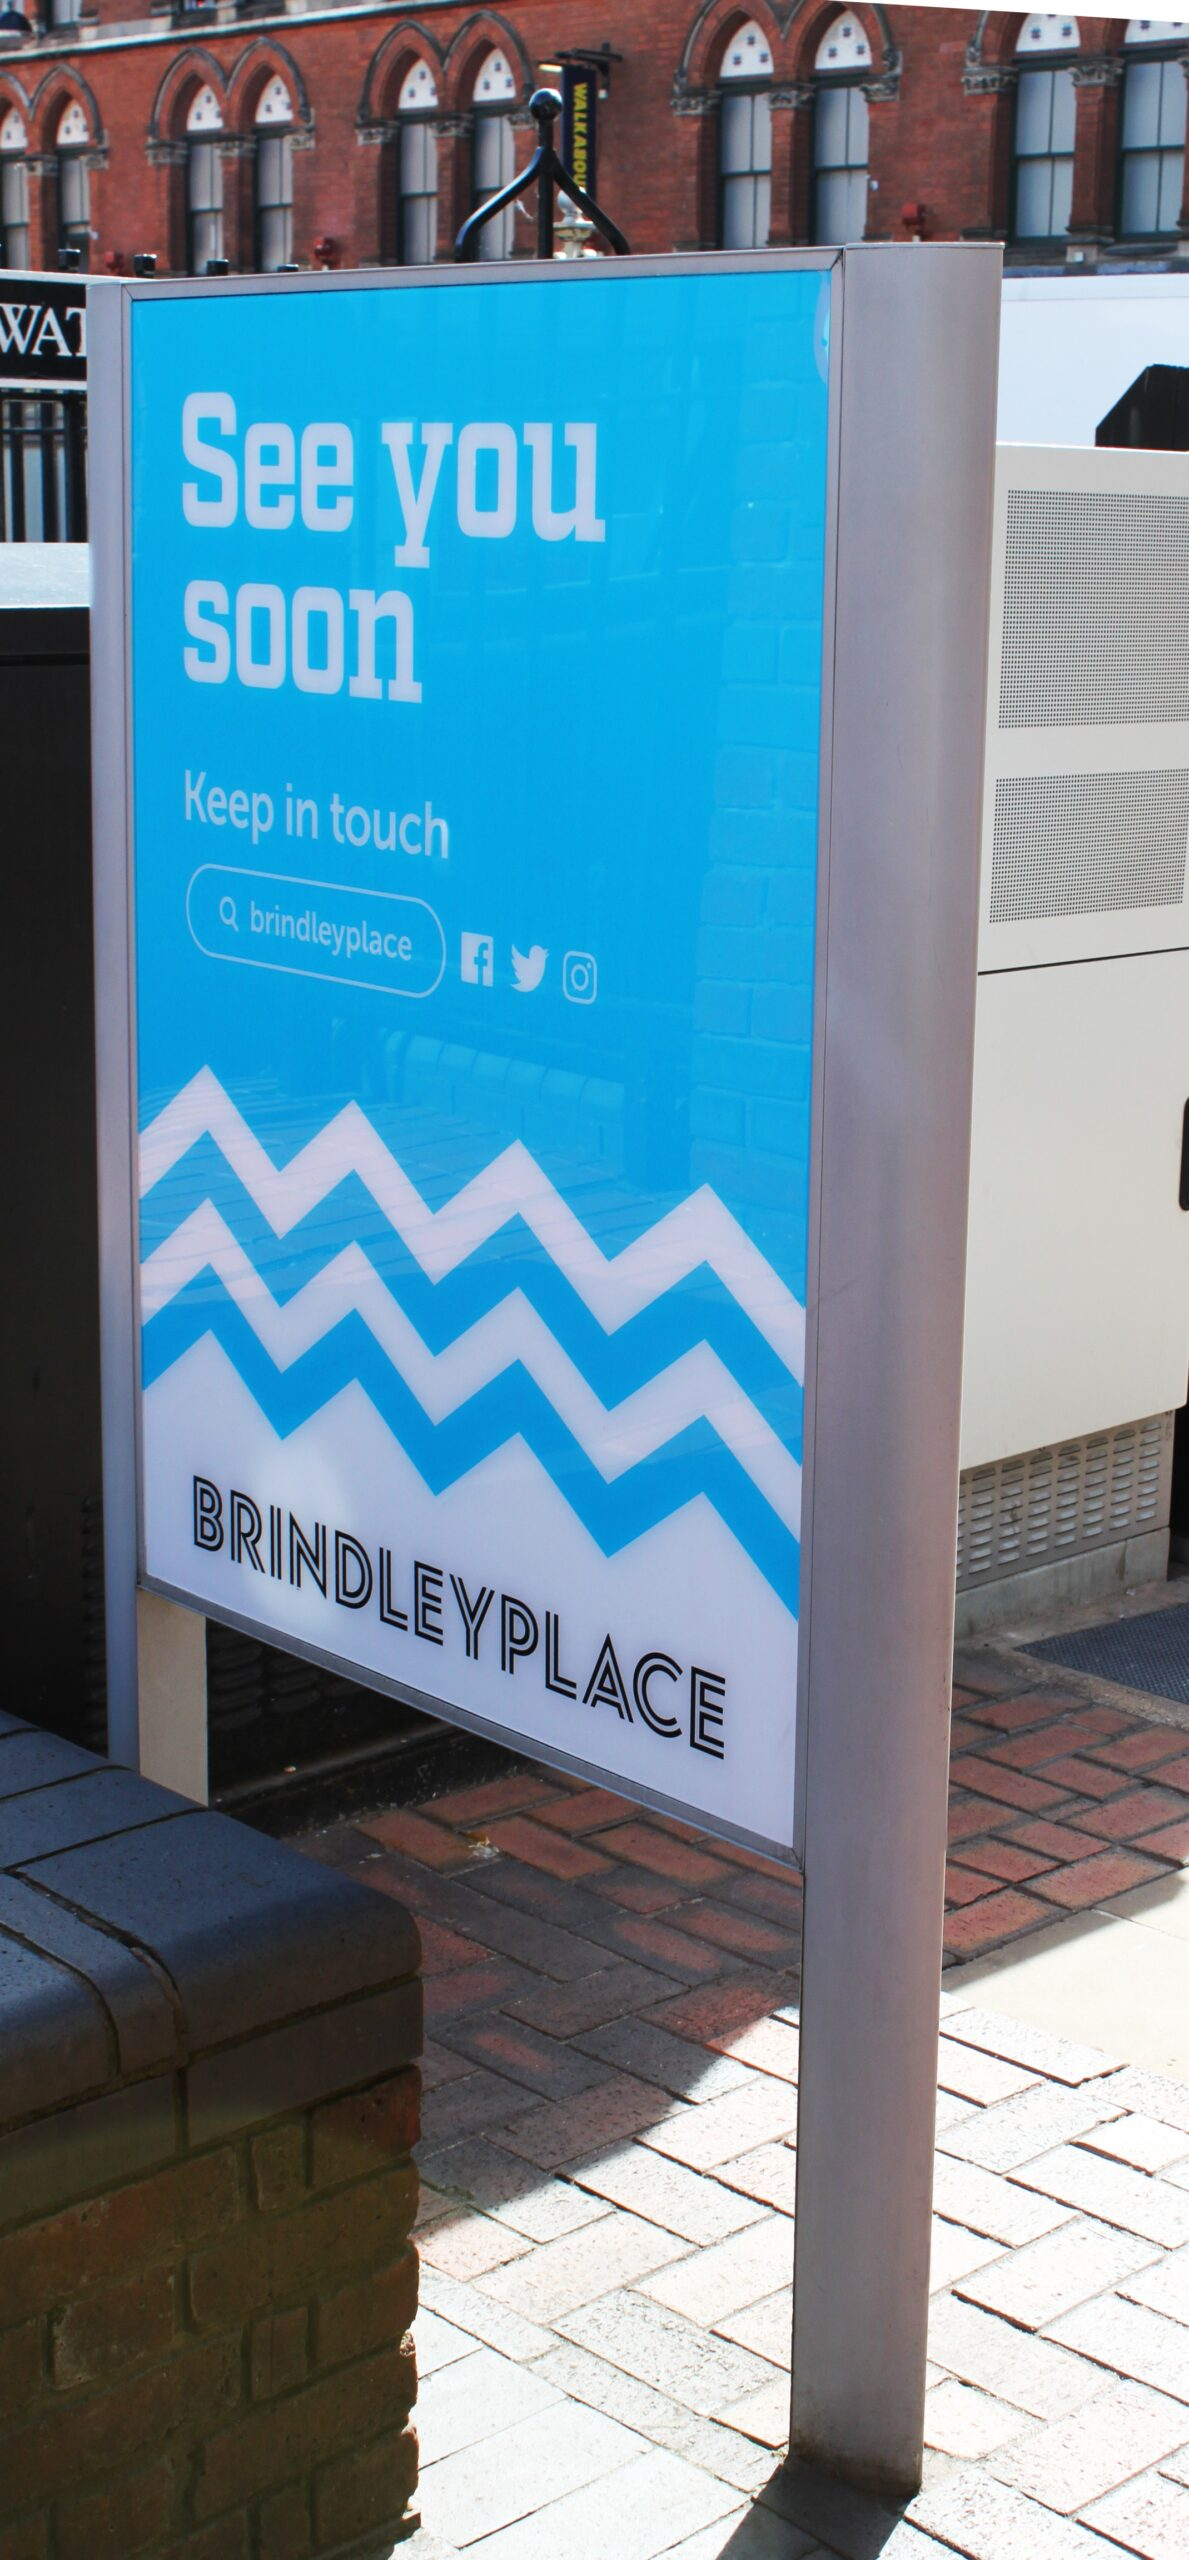 Brindley-Place-See-You-Soon-Concept-Group